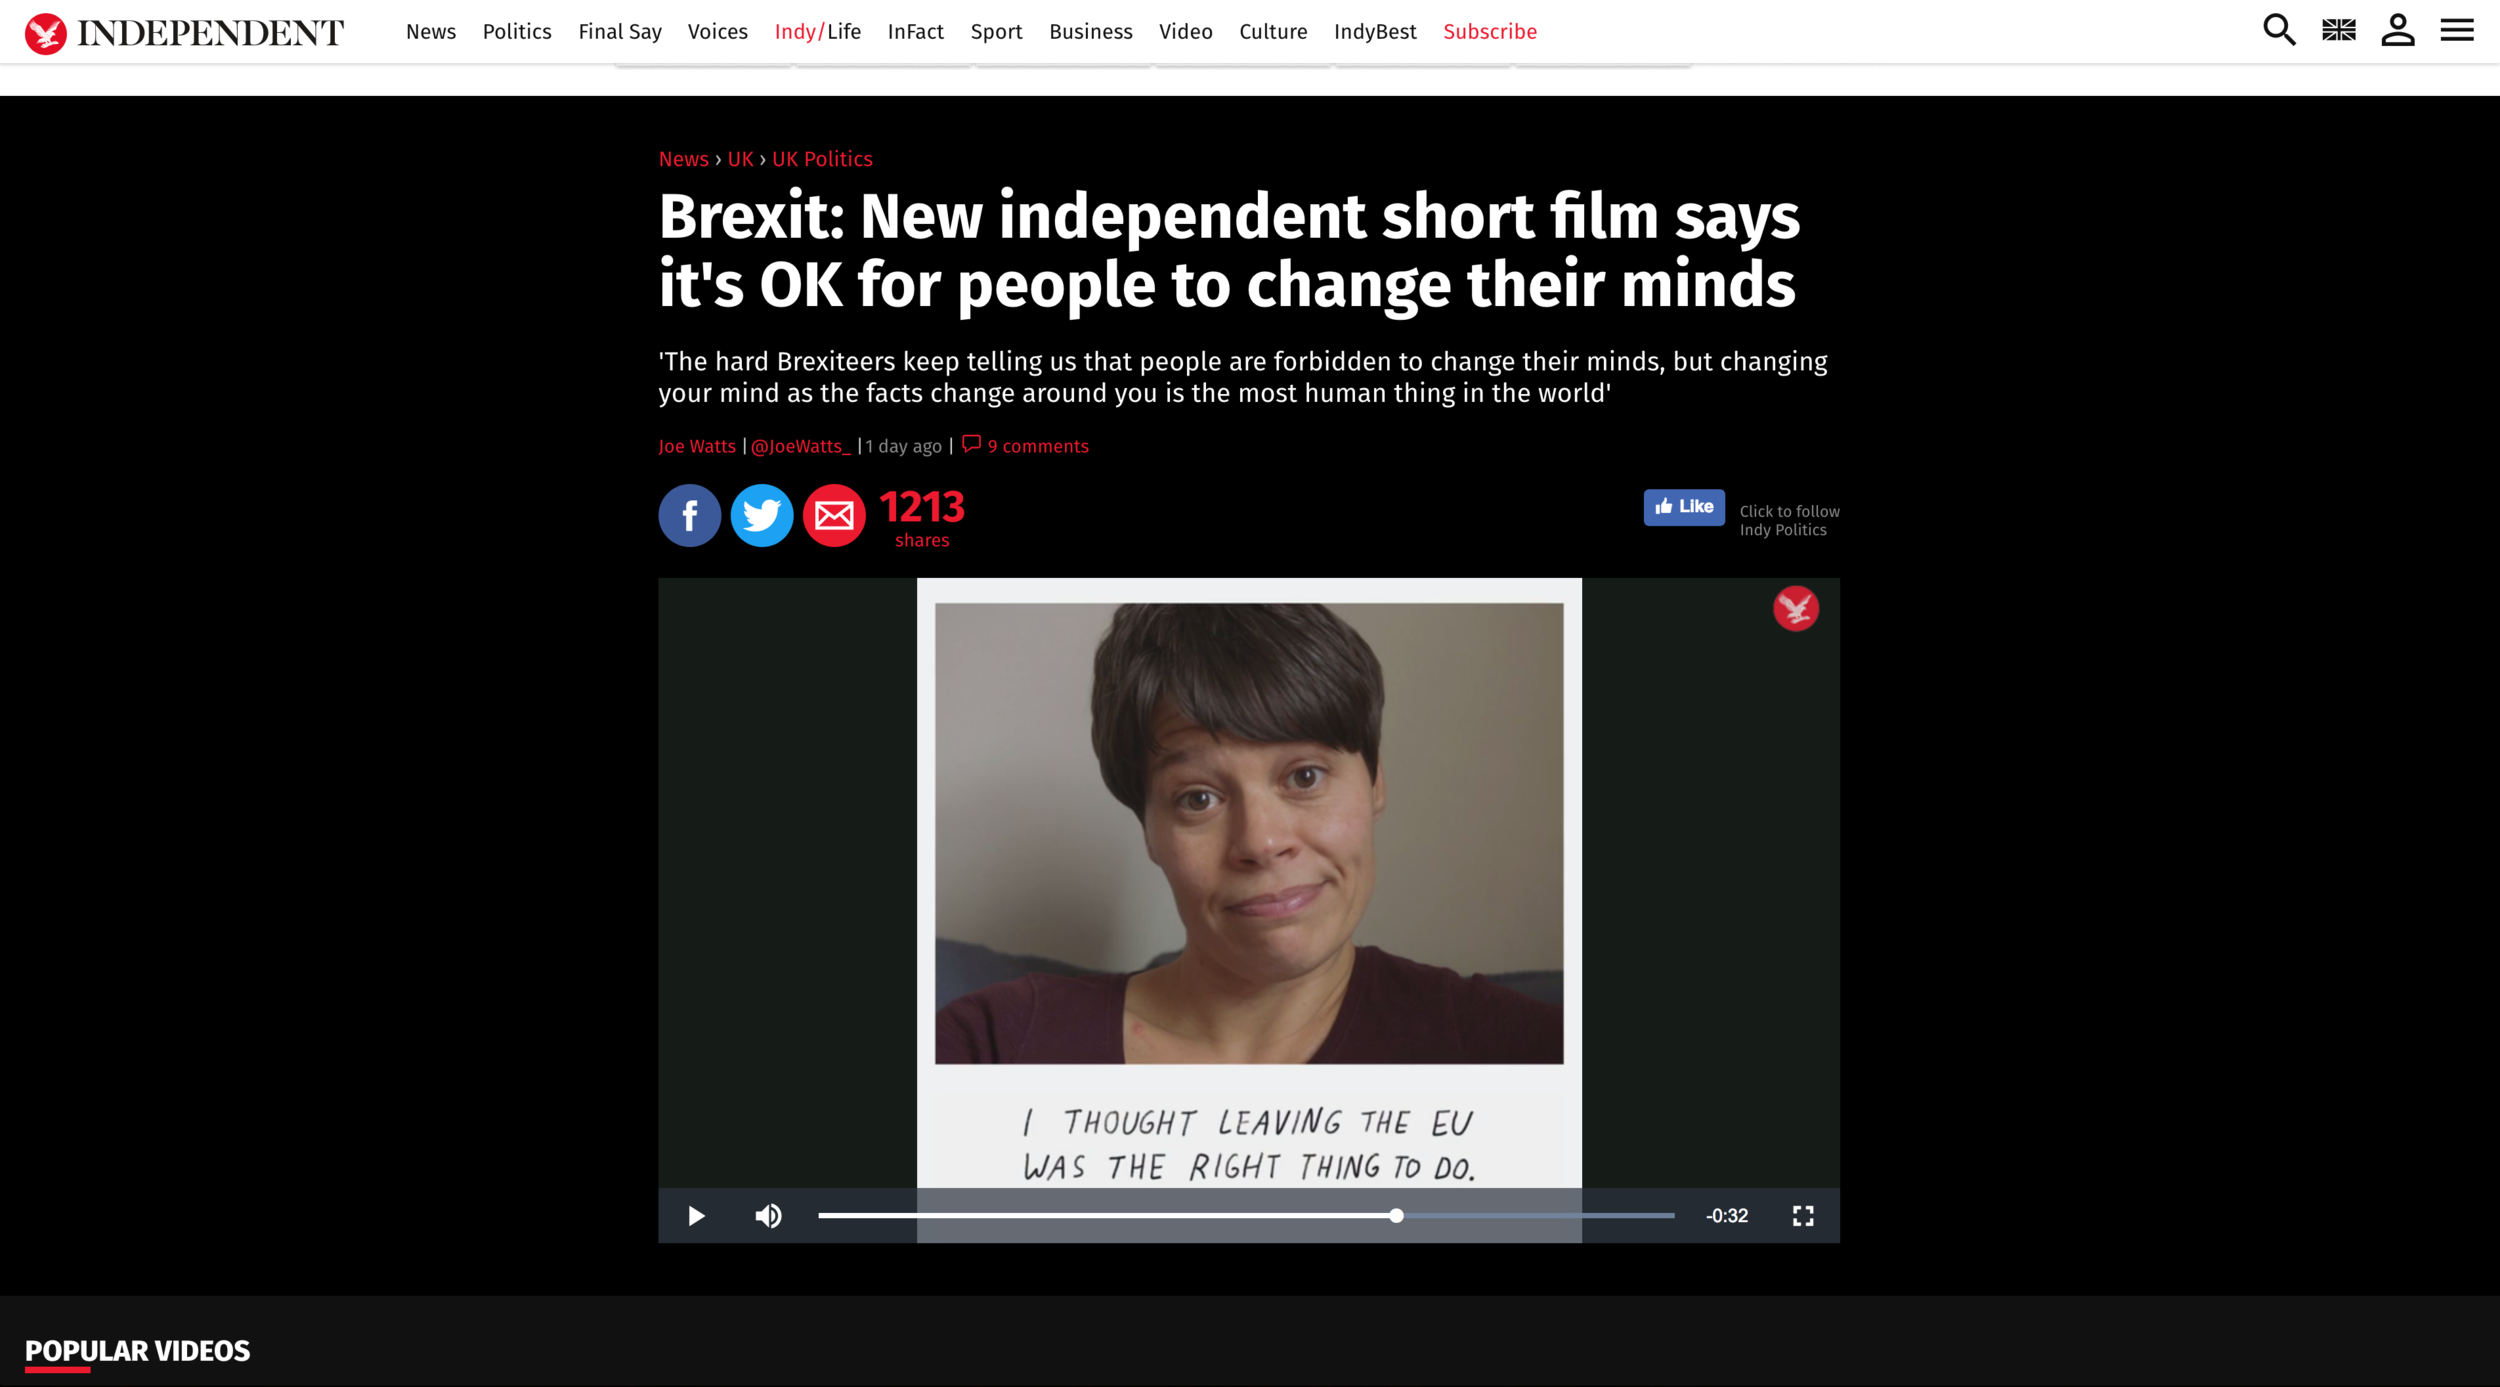 I Thought… a film about changing your mind, featured on the Independent website Thursday 20th September 2018, one of their most popular pieces of video content that day.